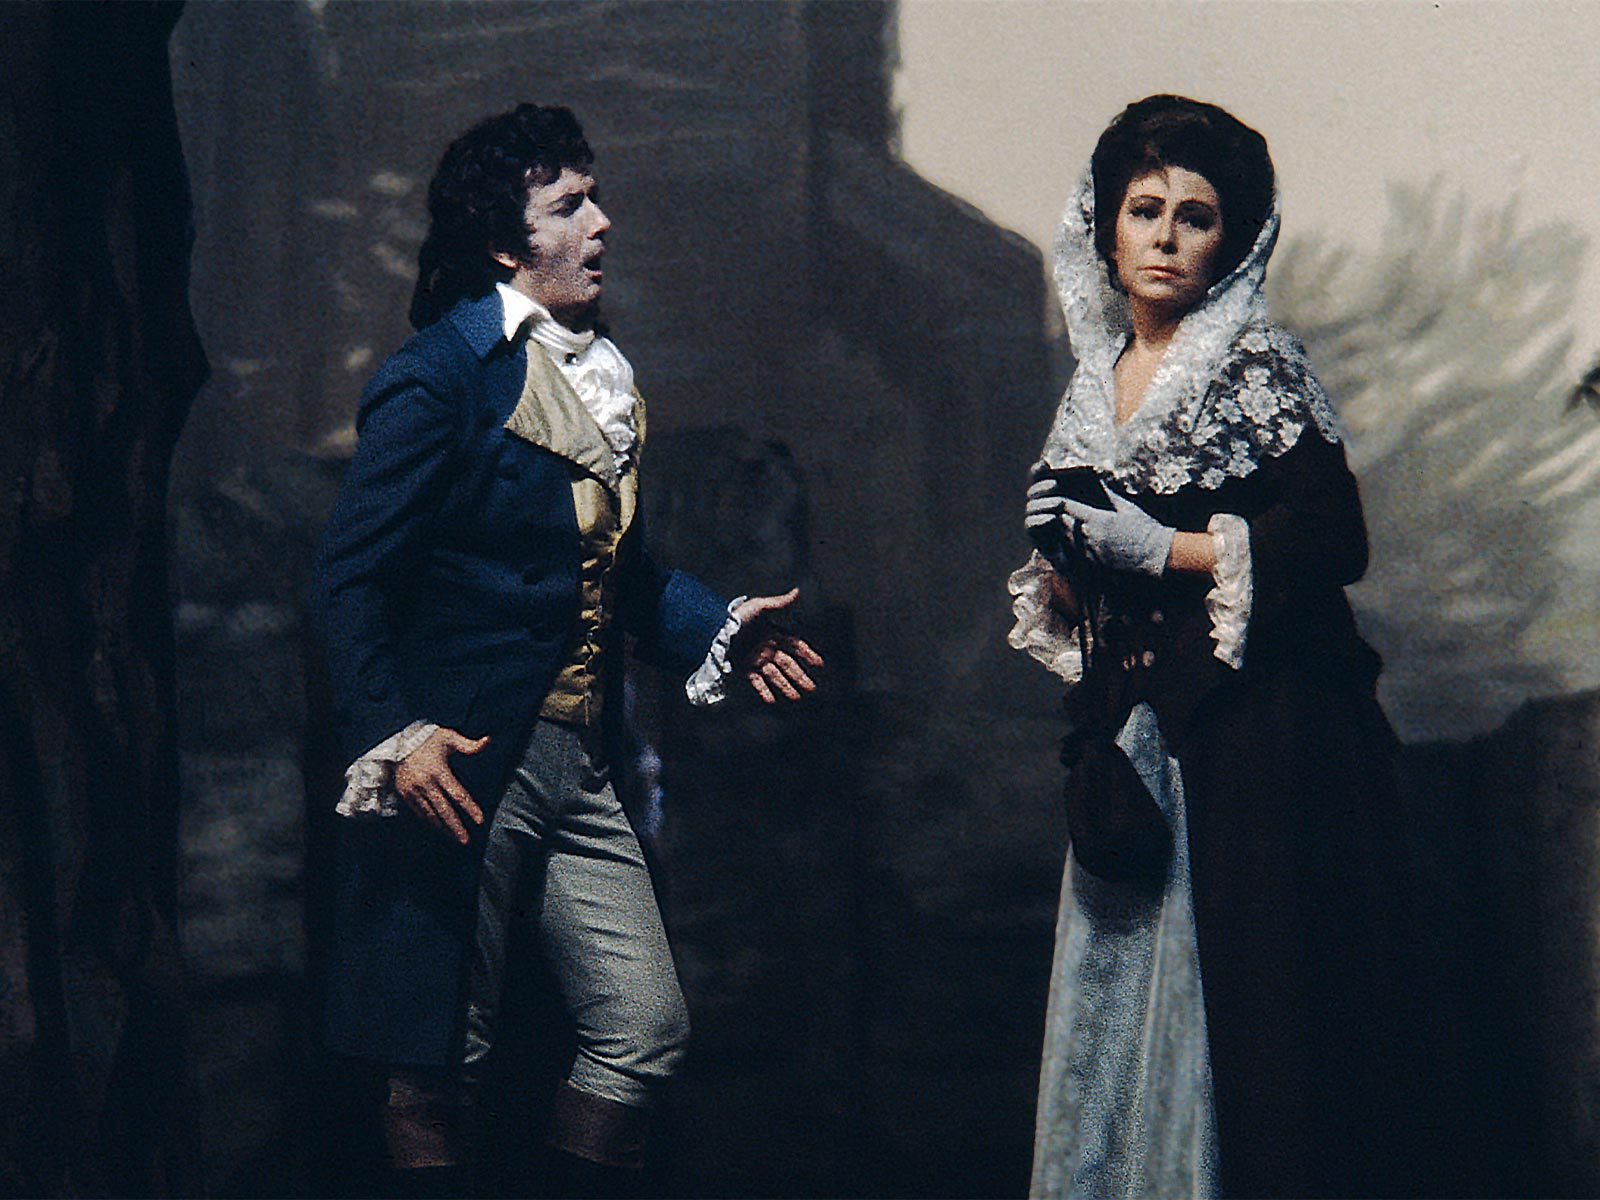 IN MEMORIAM: mezzo-soprano CHRISTA LUDWIG (1928 - 2021) as Charlotte (right) and tenor FRANCO CORELLI as the title character (left) in Jules Massenet's WERTHER at The Metropolitan Opera in 1971 [Photograph attributed to Louis Mélançon, © by The Metropolitan Opera]